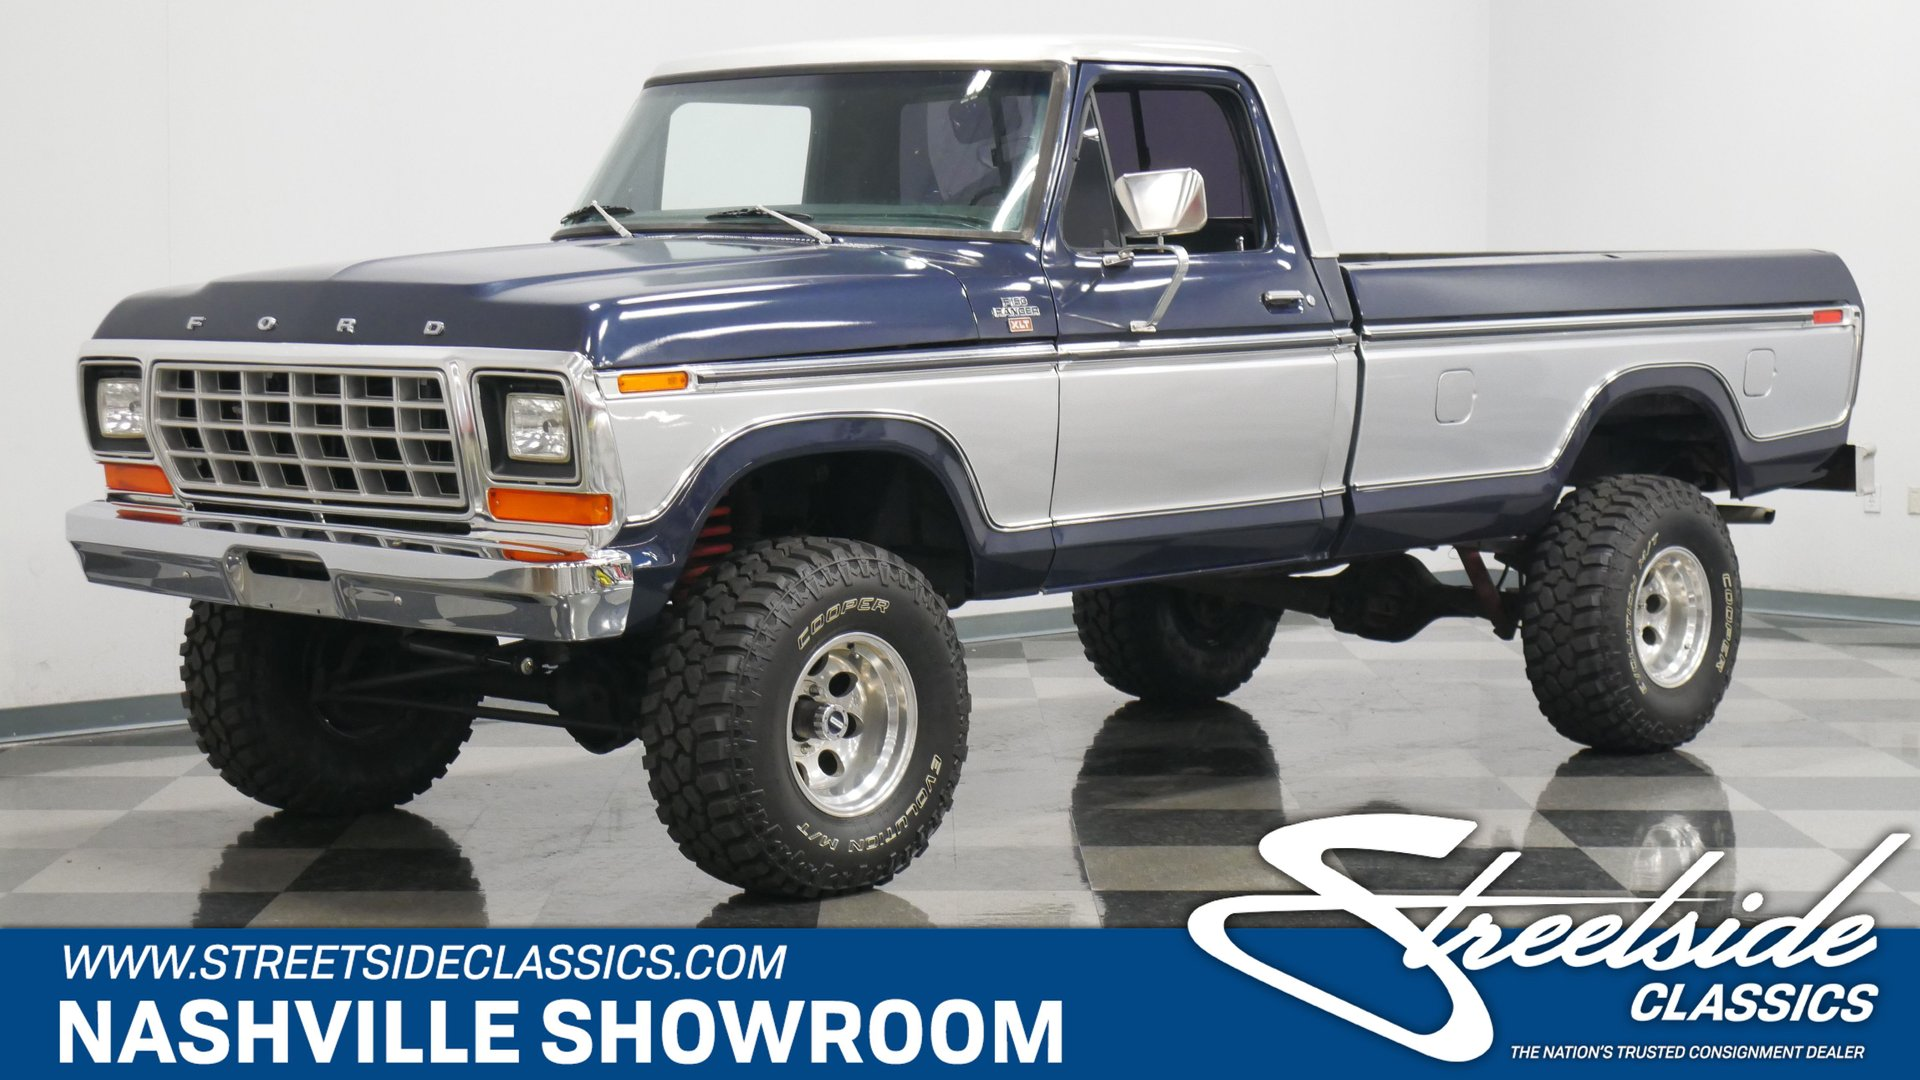 1978 Ford F 150 Classic Cars For Sale Streetside Classics The Nation S 1 Consignment Dealer